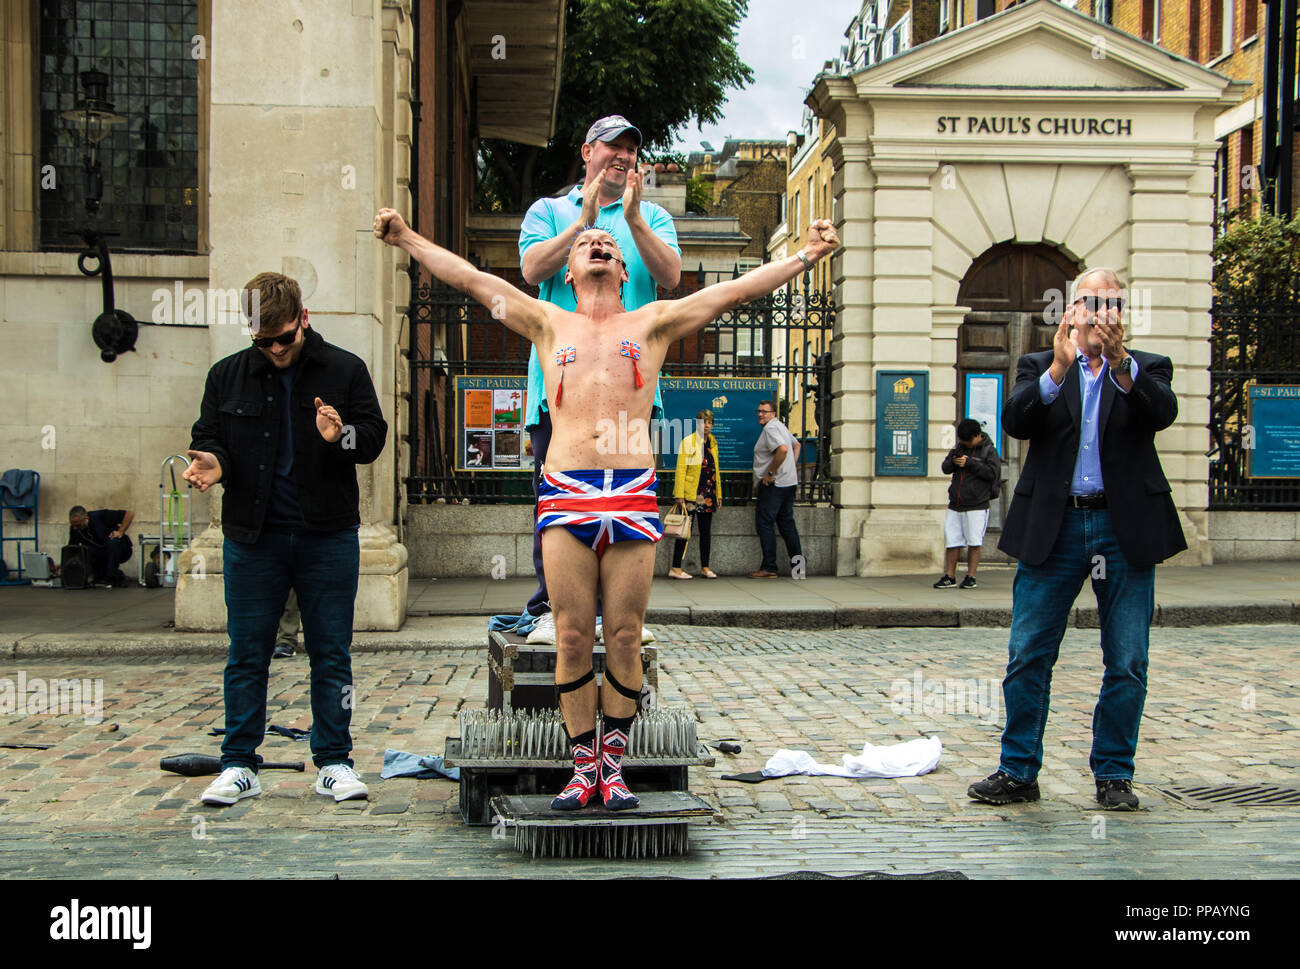 london-uk-sept-22-2018-shirtless-daredevil-performer-with-union-jack-underwear-performing-a-dangerous-stunt-for-a-crowd-in-covent-garden-PPAYNG.jpg